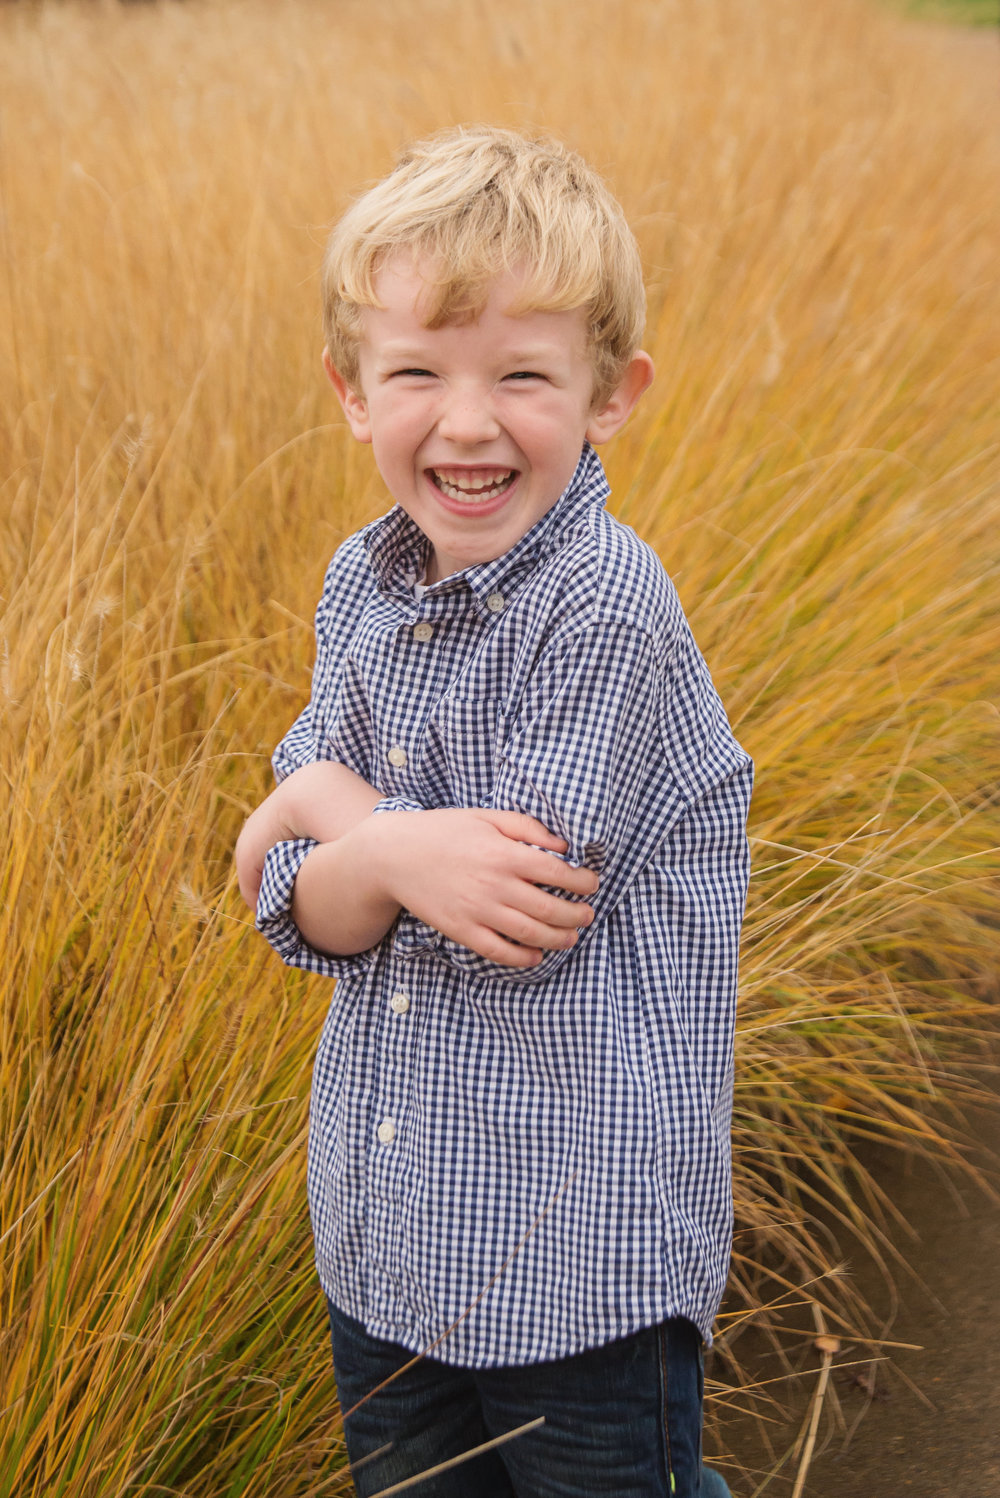 st-louis-childrens-photographer-boy-in-polo-in-front-of-tall-yellow-grass-at-the-muny-forest-park.jpg